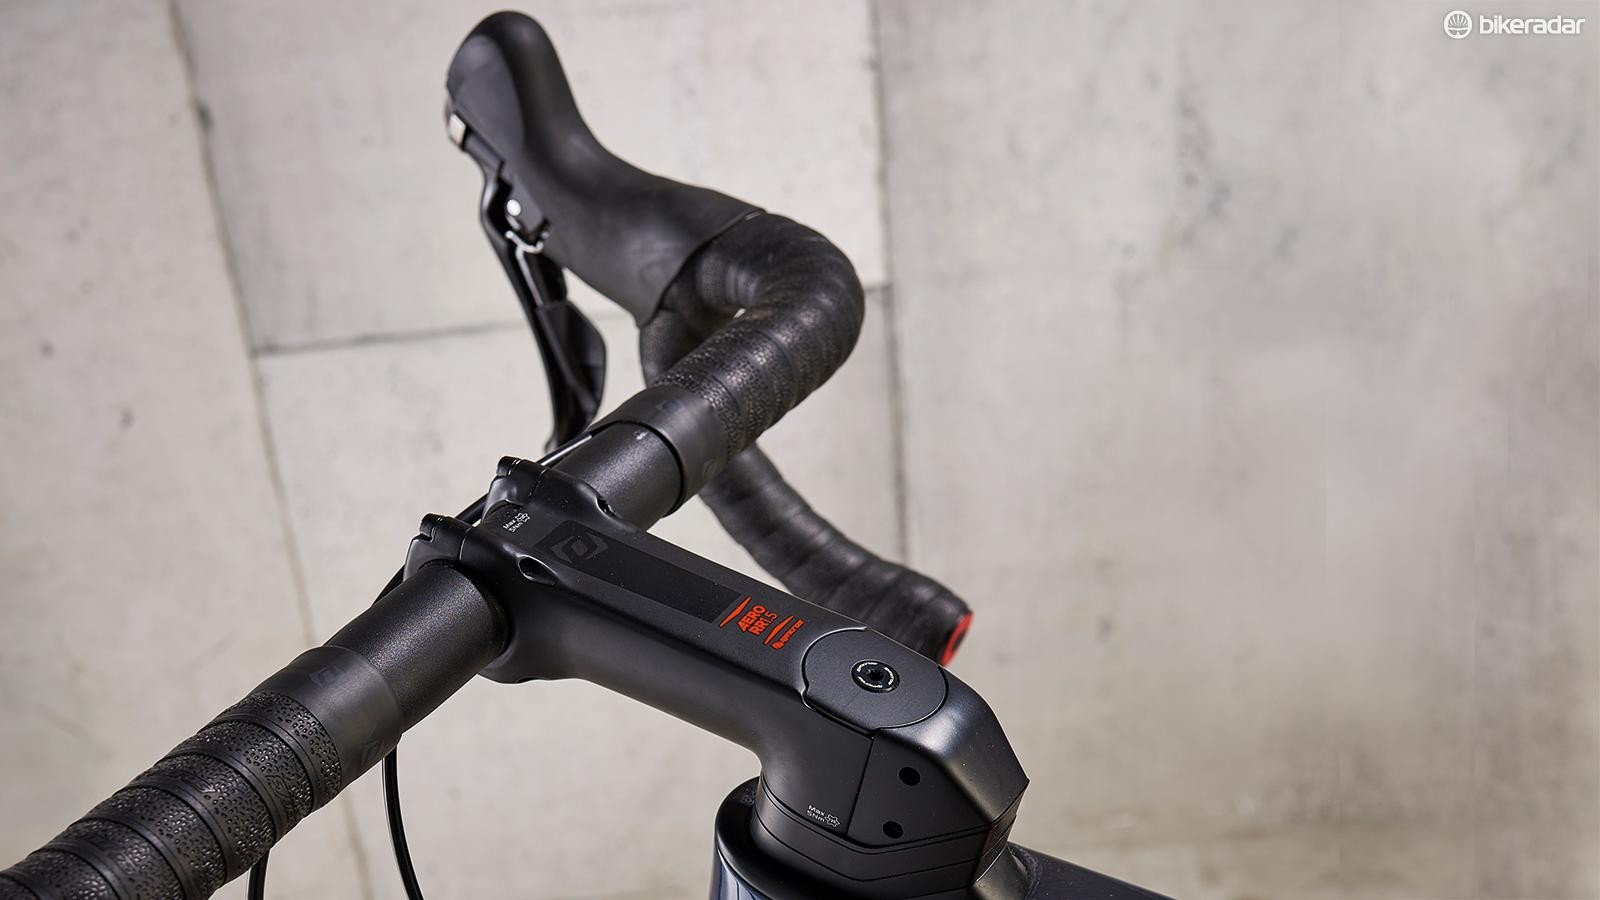 Scott sub-brand Syncros provides the compact bar and stem